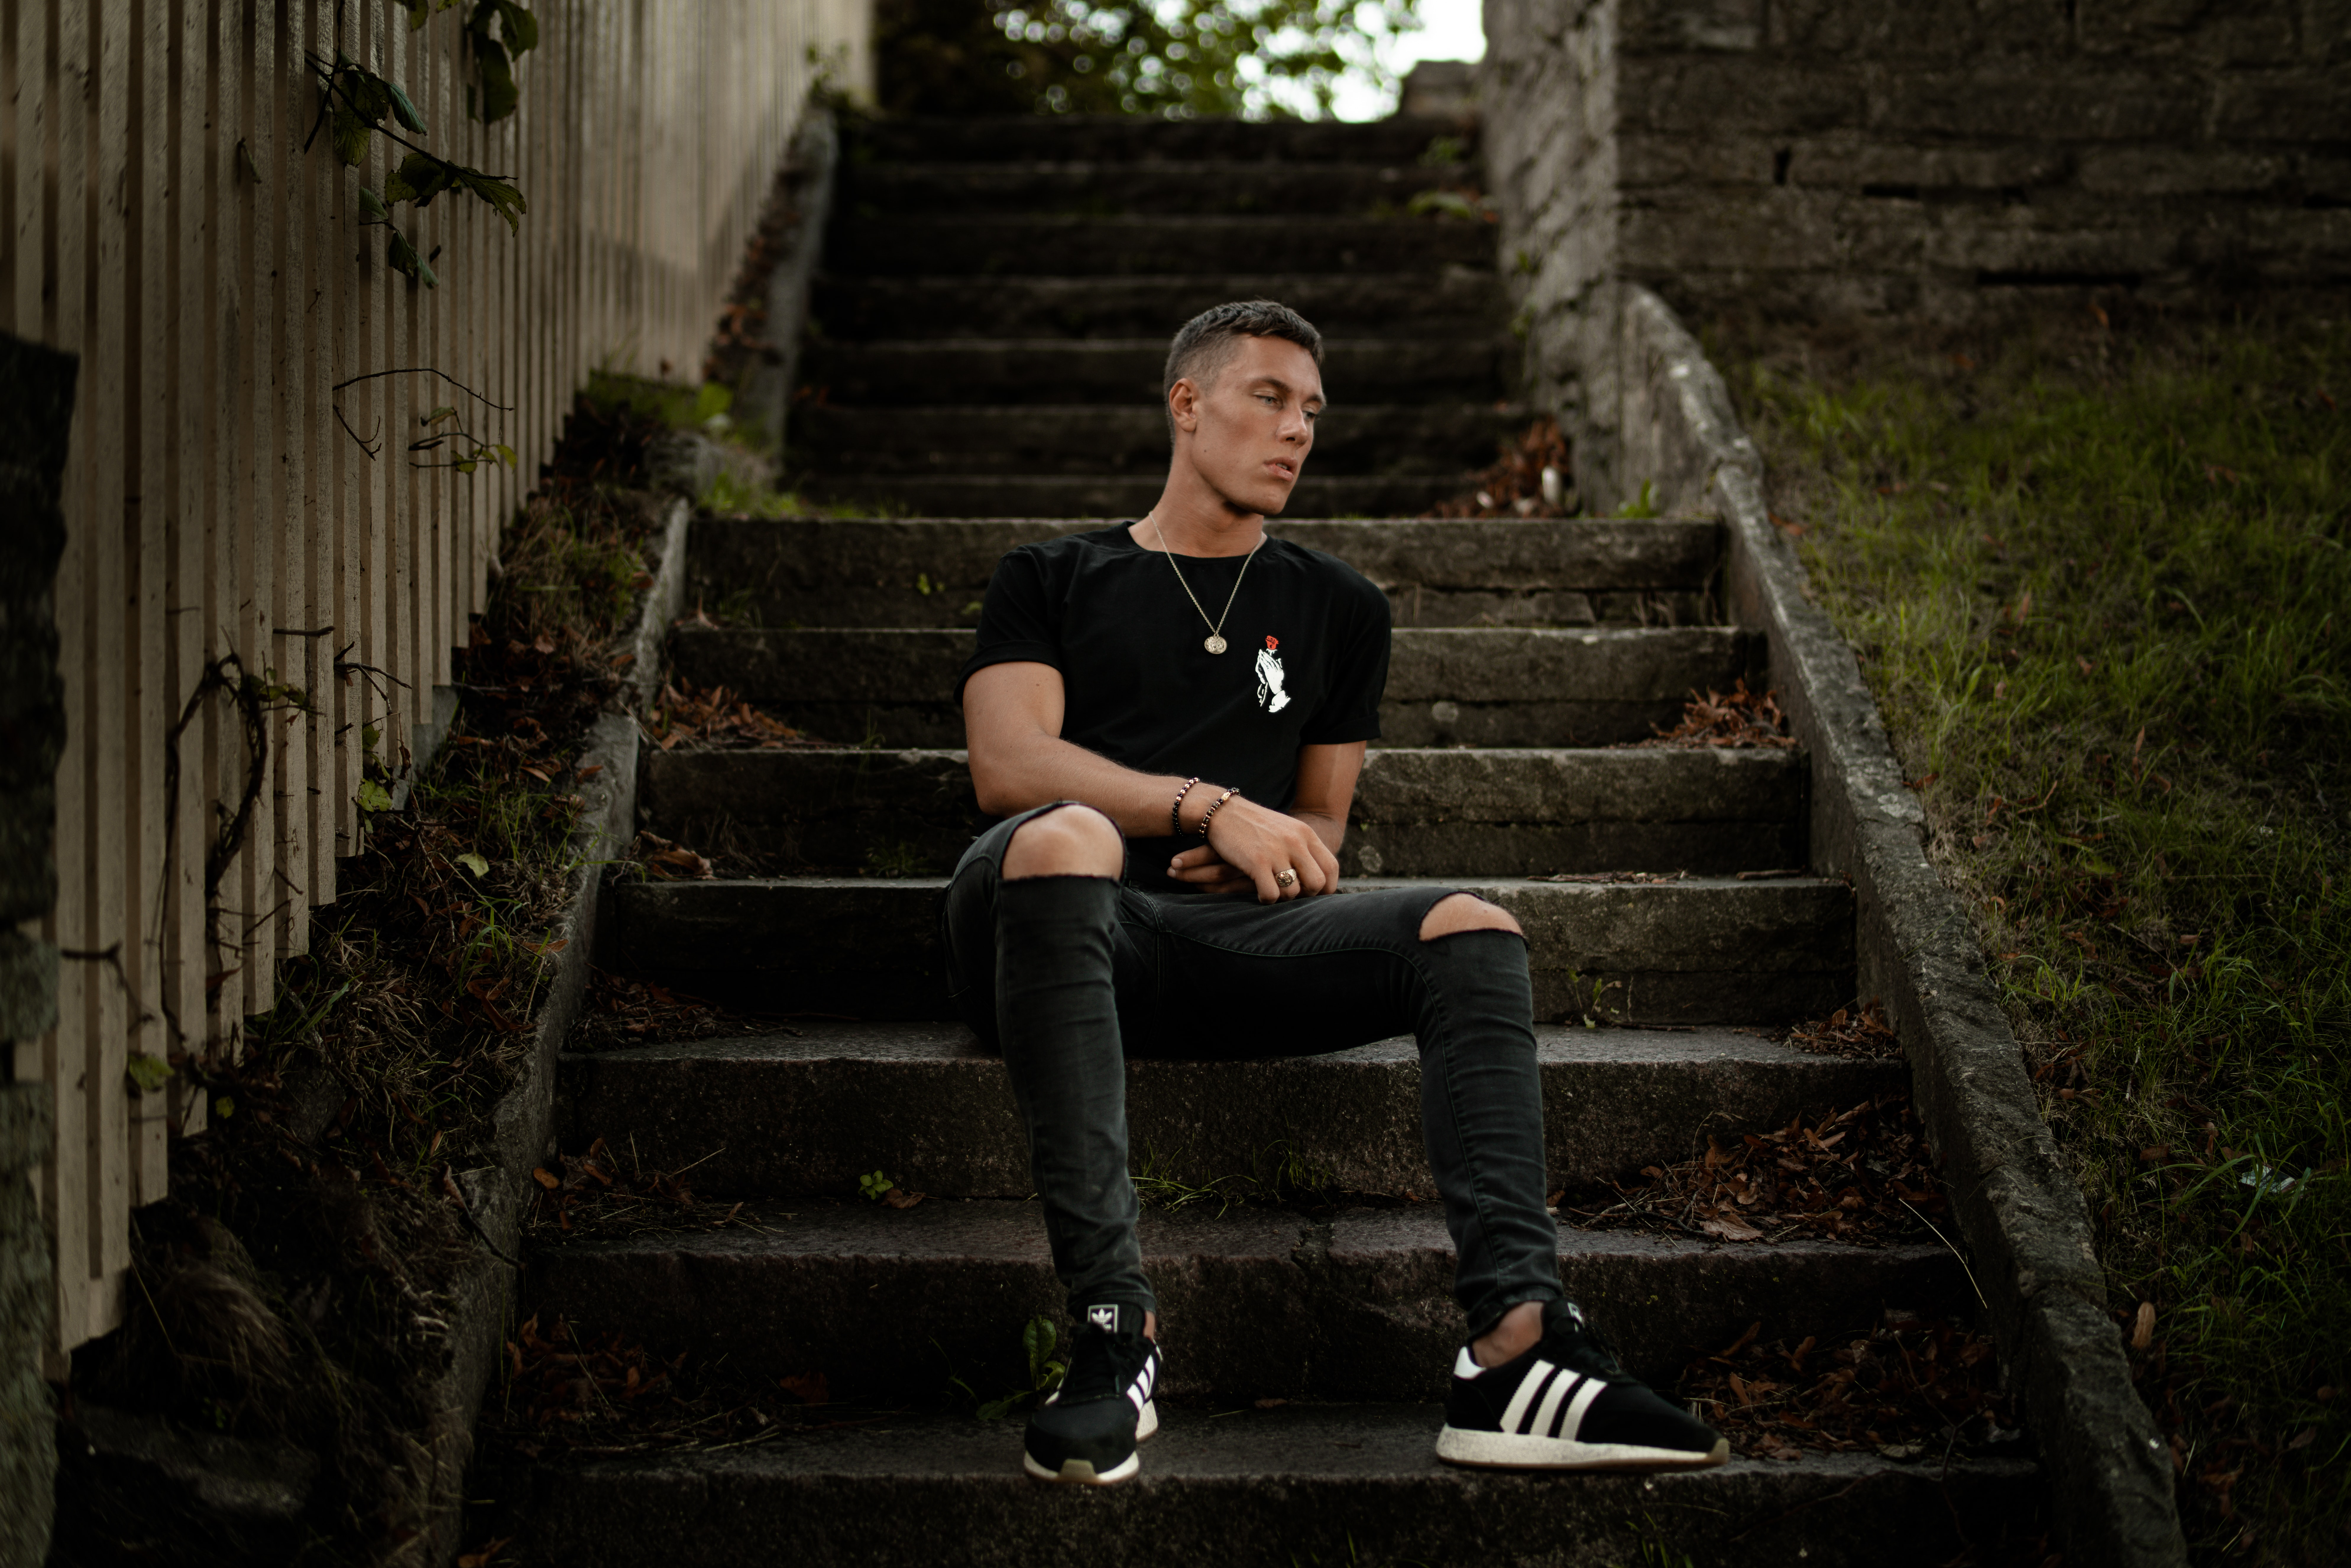 man sitting on the stair